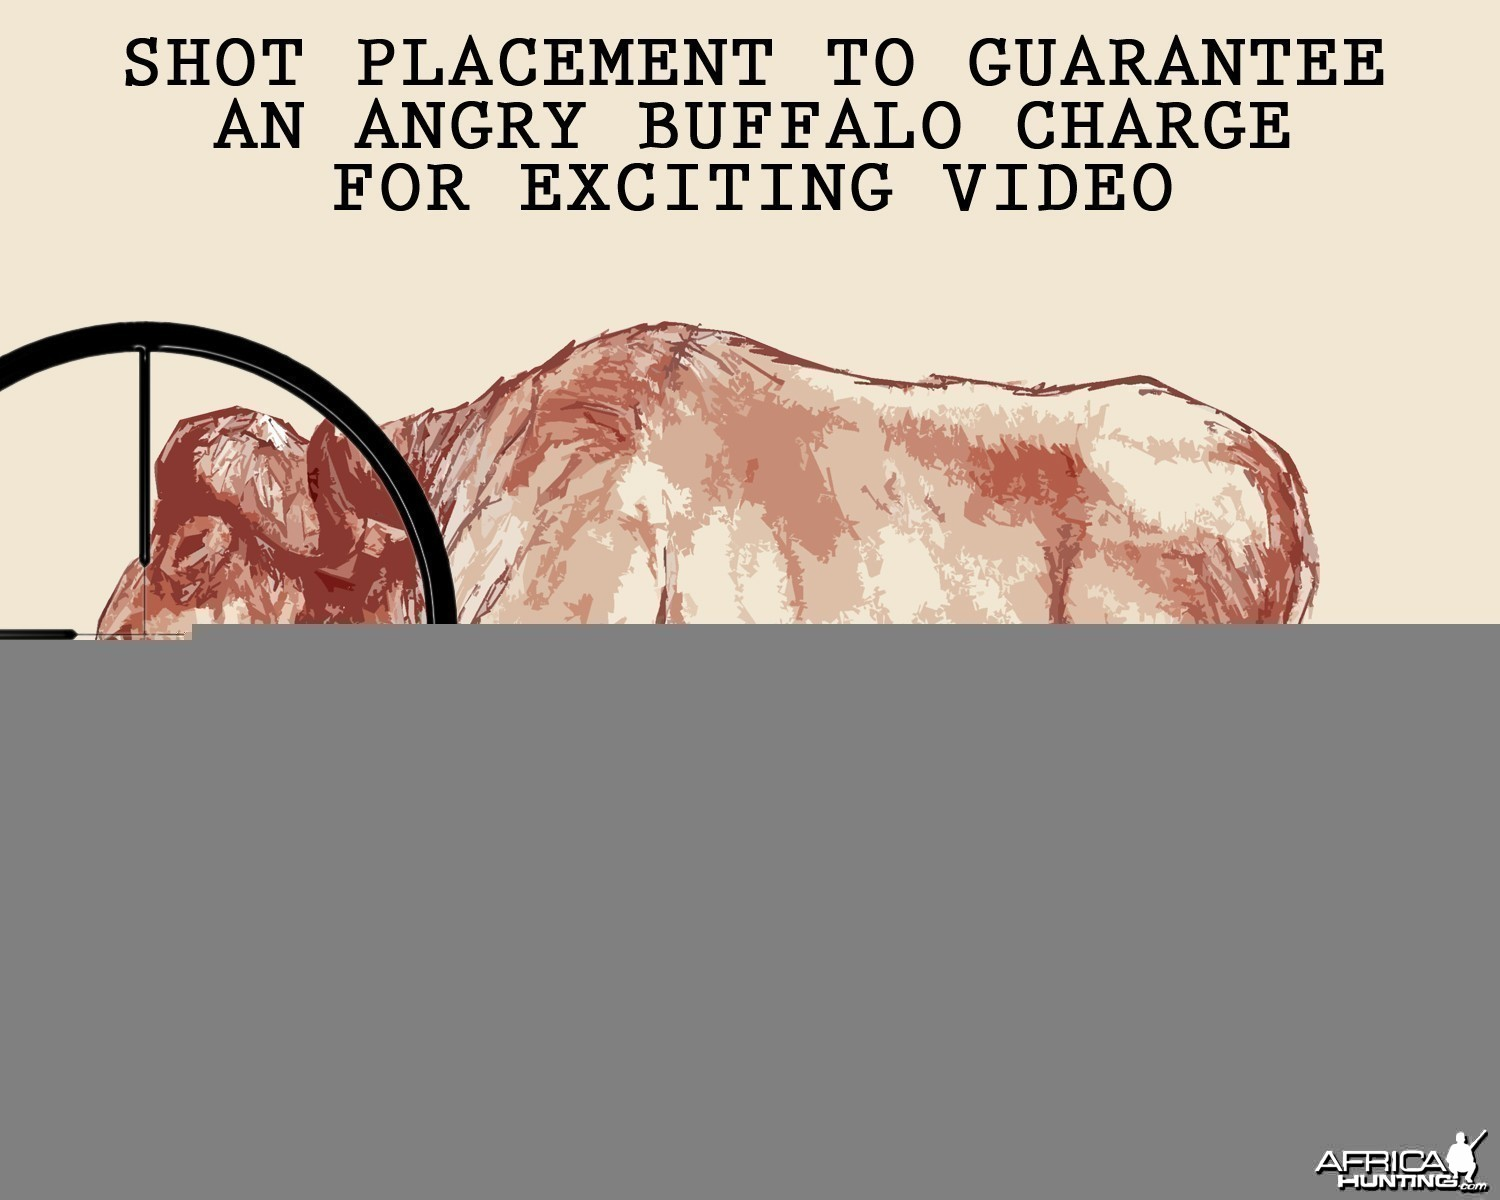 SHOT PLACEMENT TO GUARANTEE AN ANGRY BUFFALO CHARGE FOR EXCITING VIDEO